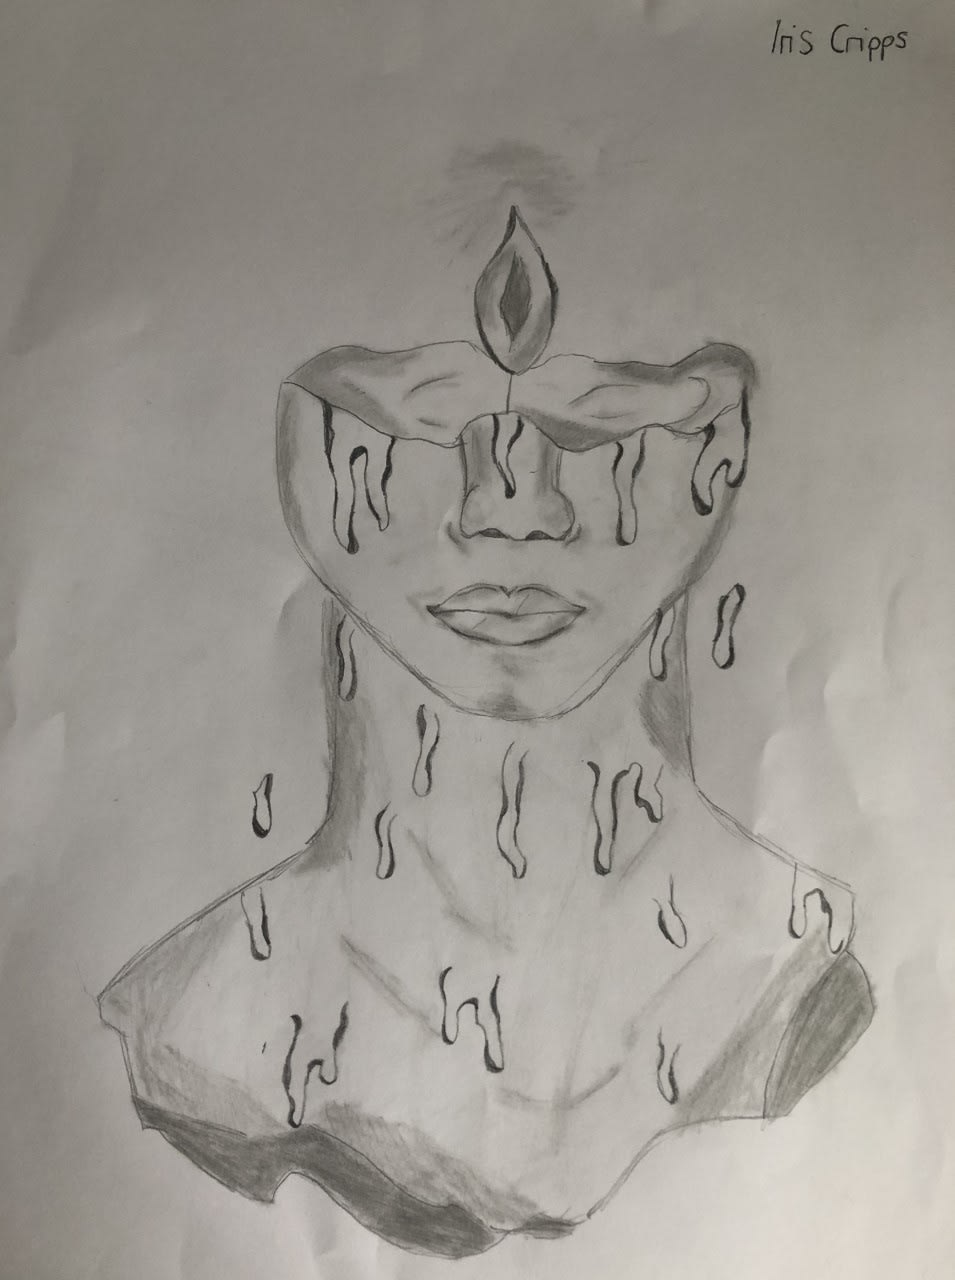 Iris Cripps, age 12 Inspired by all the artwork